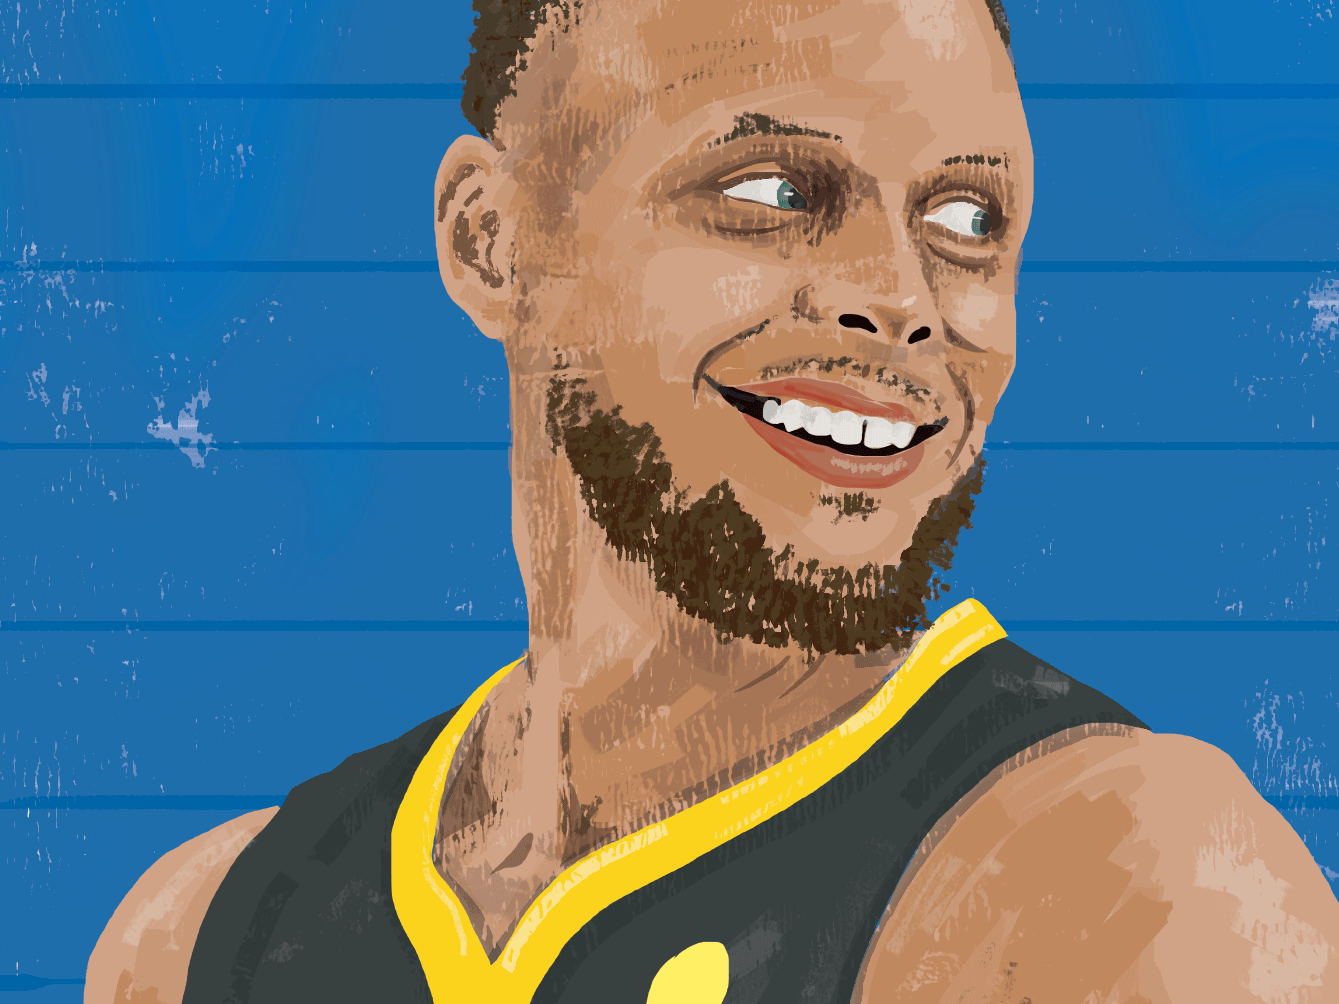 Steph Curry nba sports illustration portrait sports illustrated basketball warriors golden state warriors steph curry